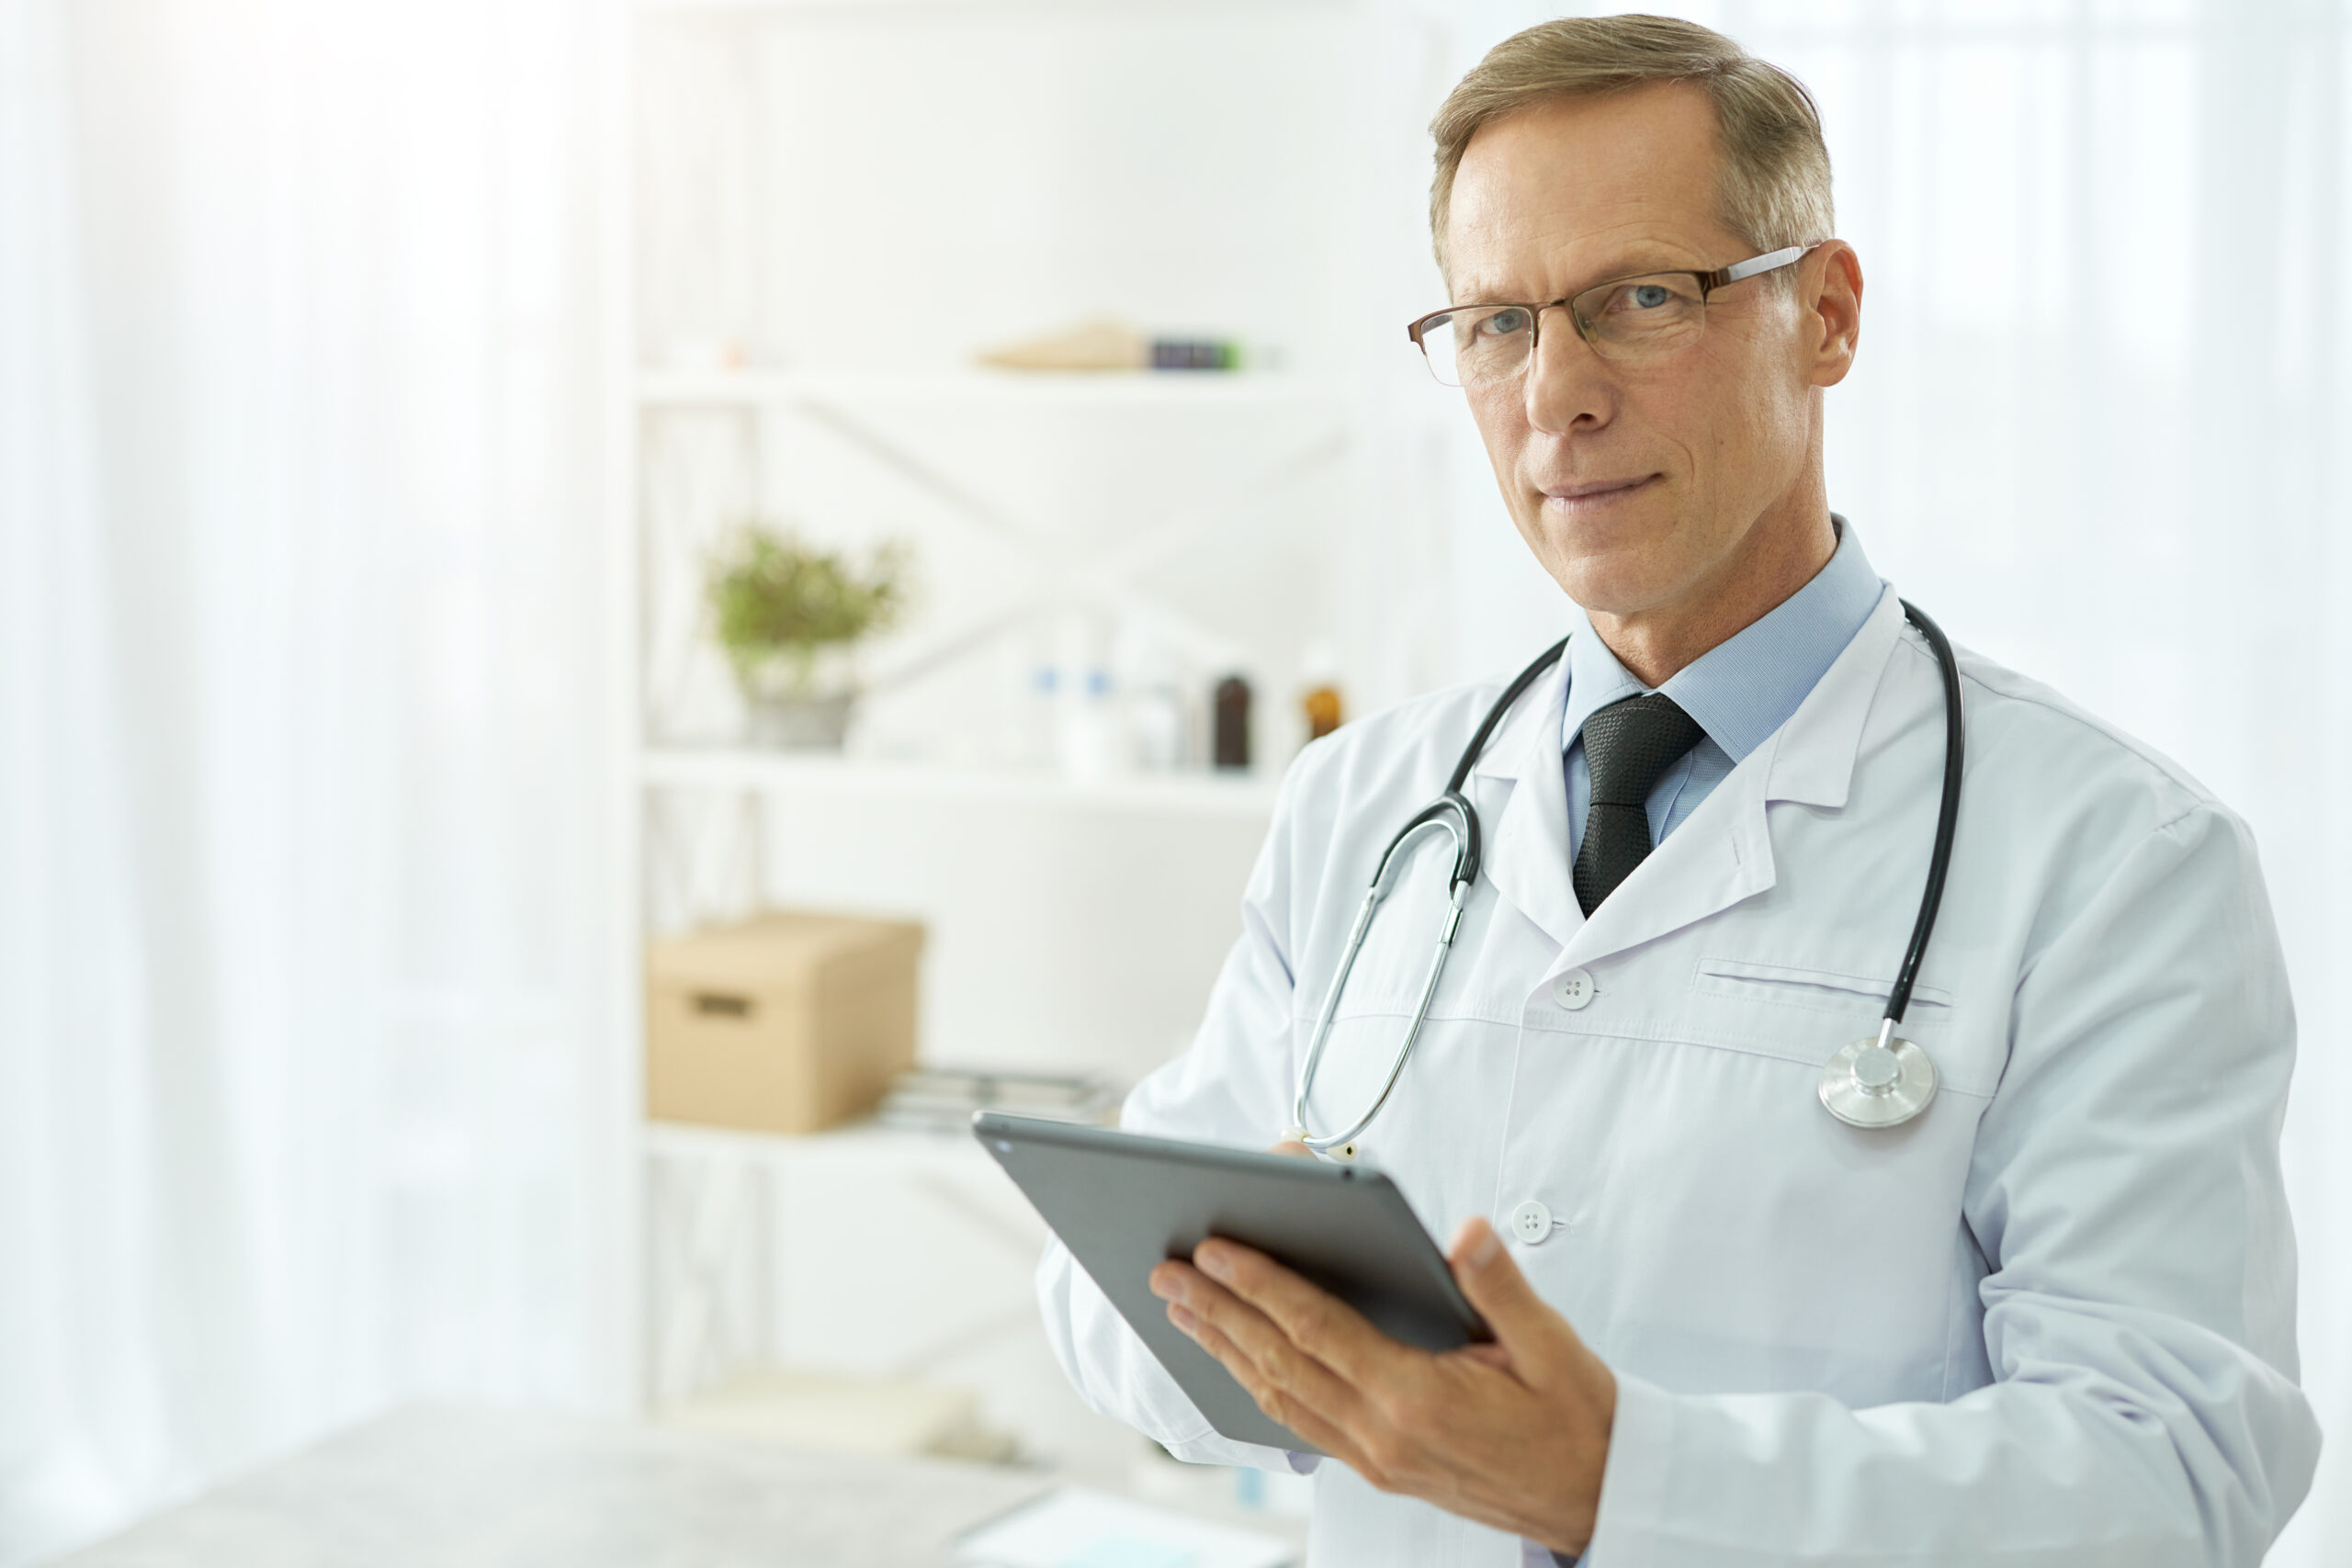 Handsome doctor in lab coat using tablet computer in clinic